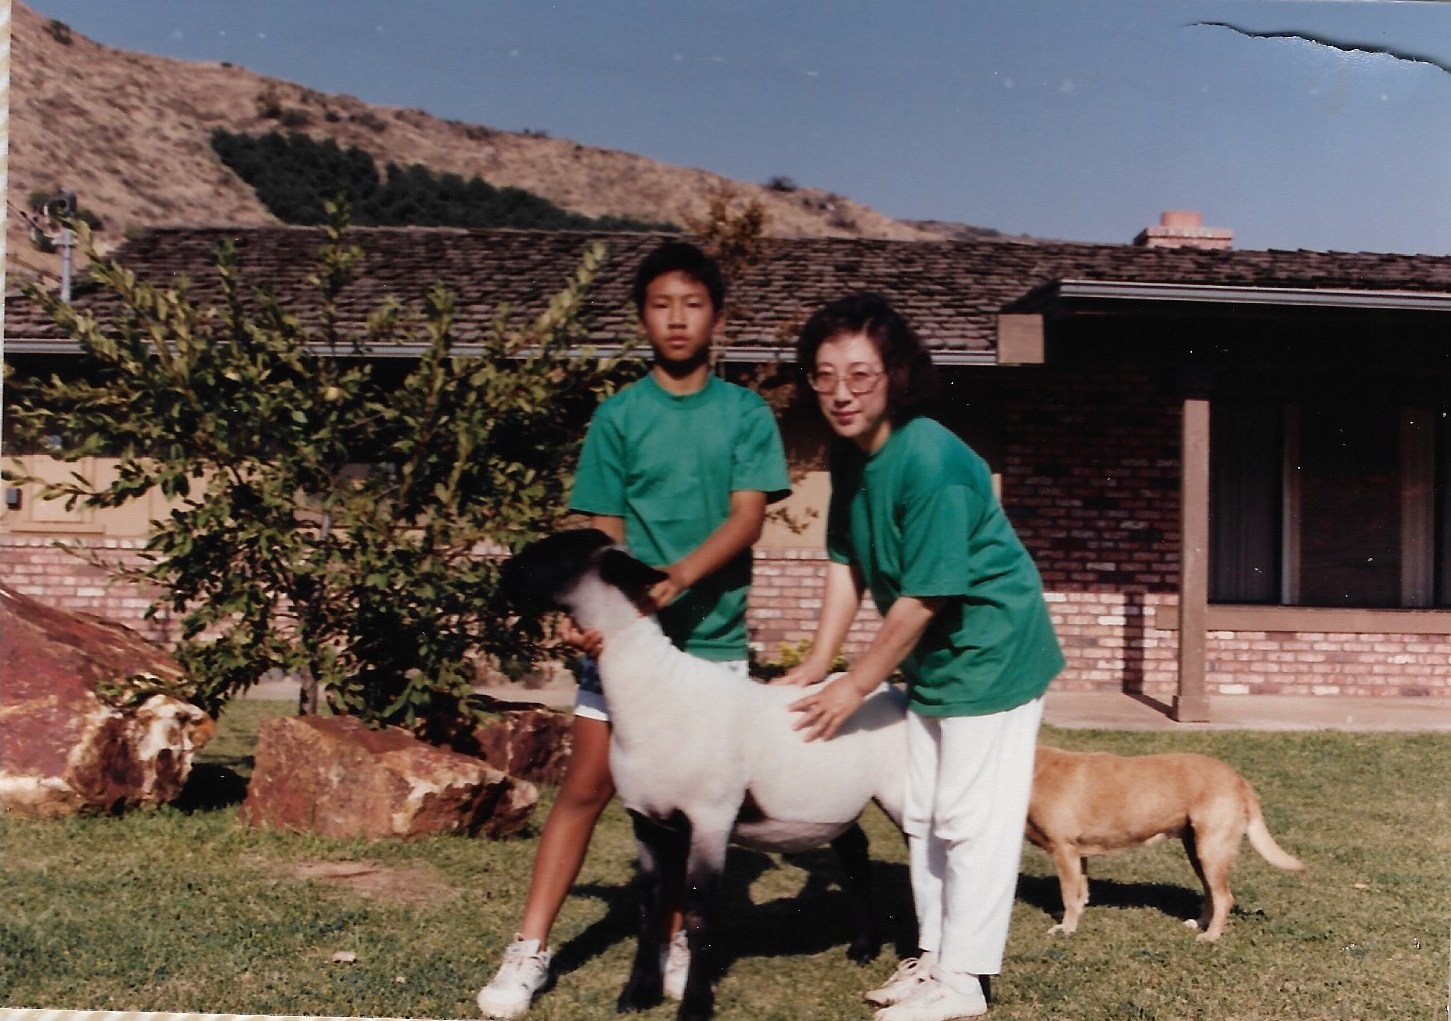 Joseph Chong, left, with his mother Sun Ok Chong on their California farm in the 1980s.